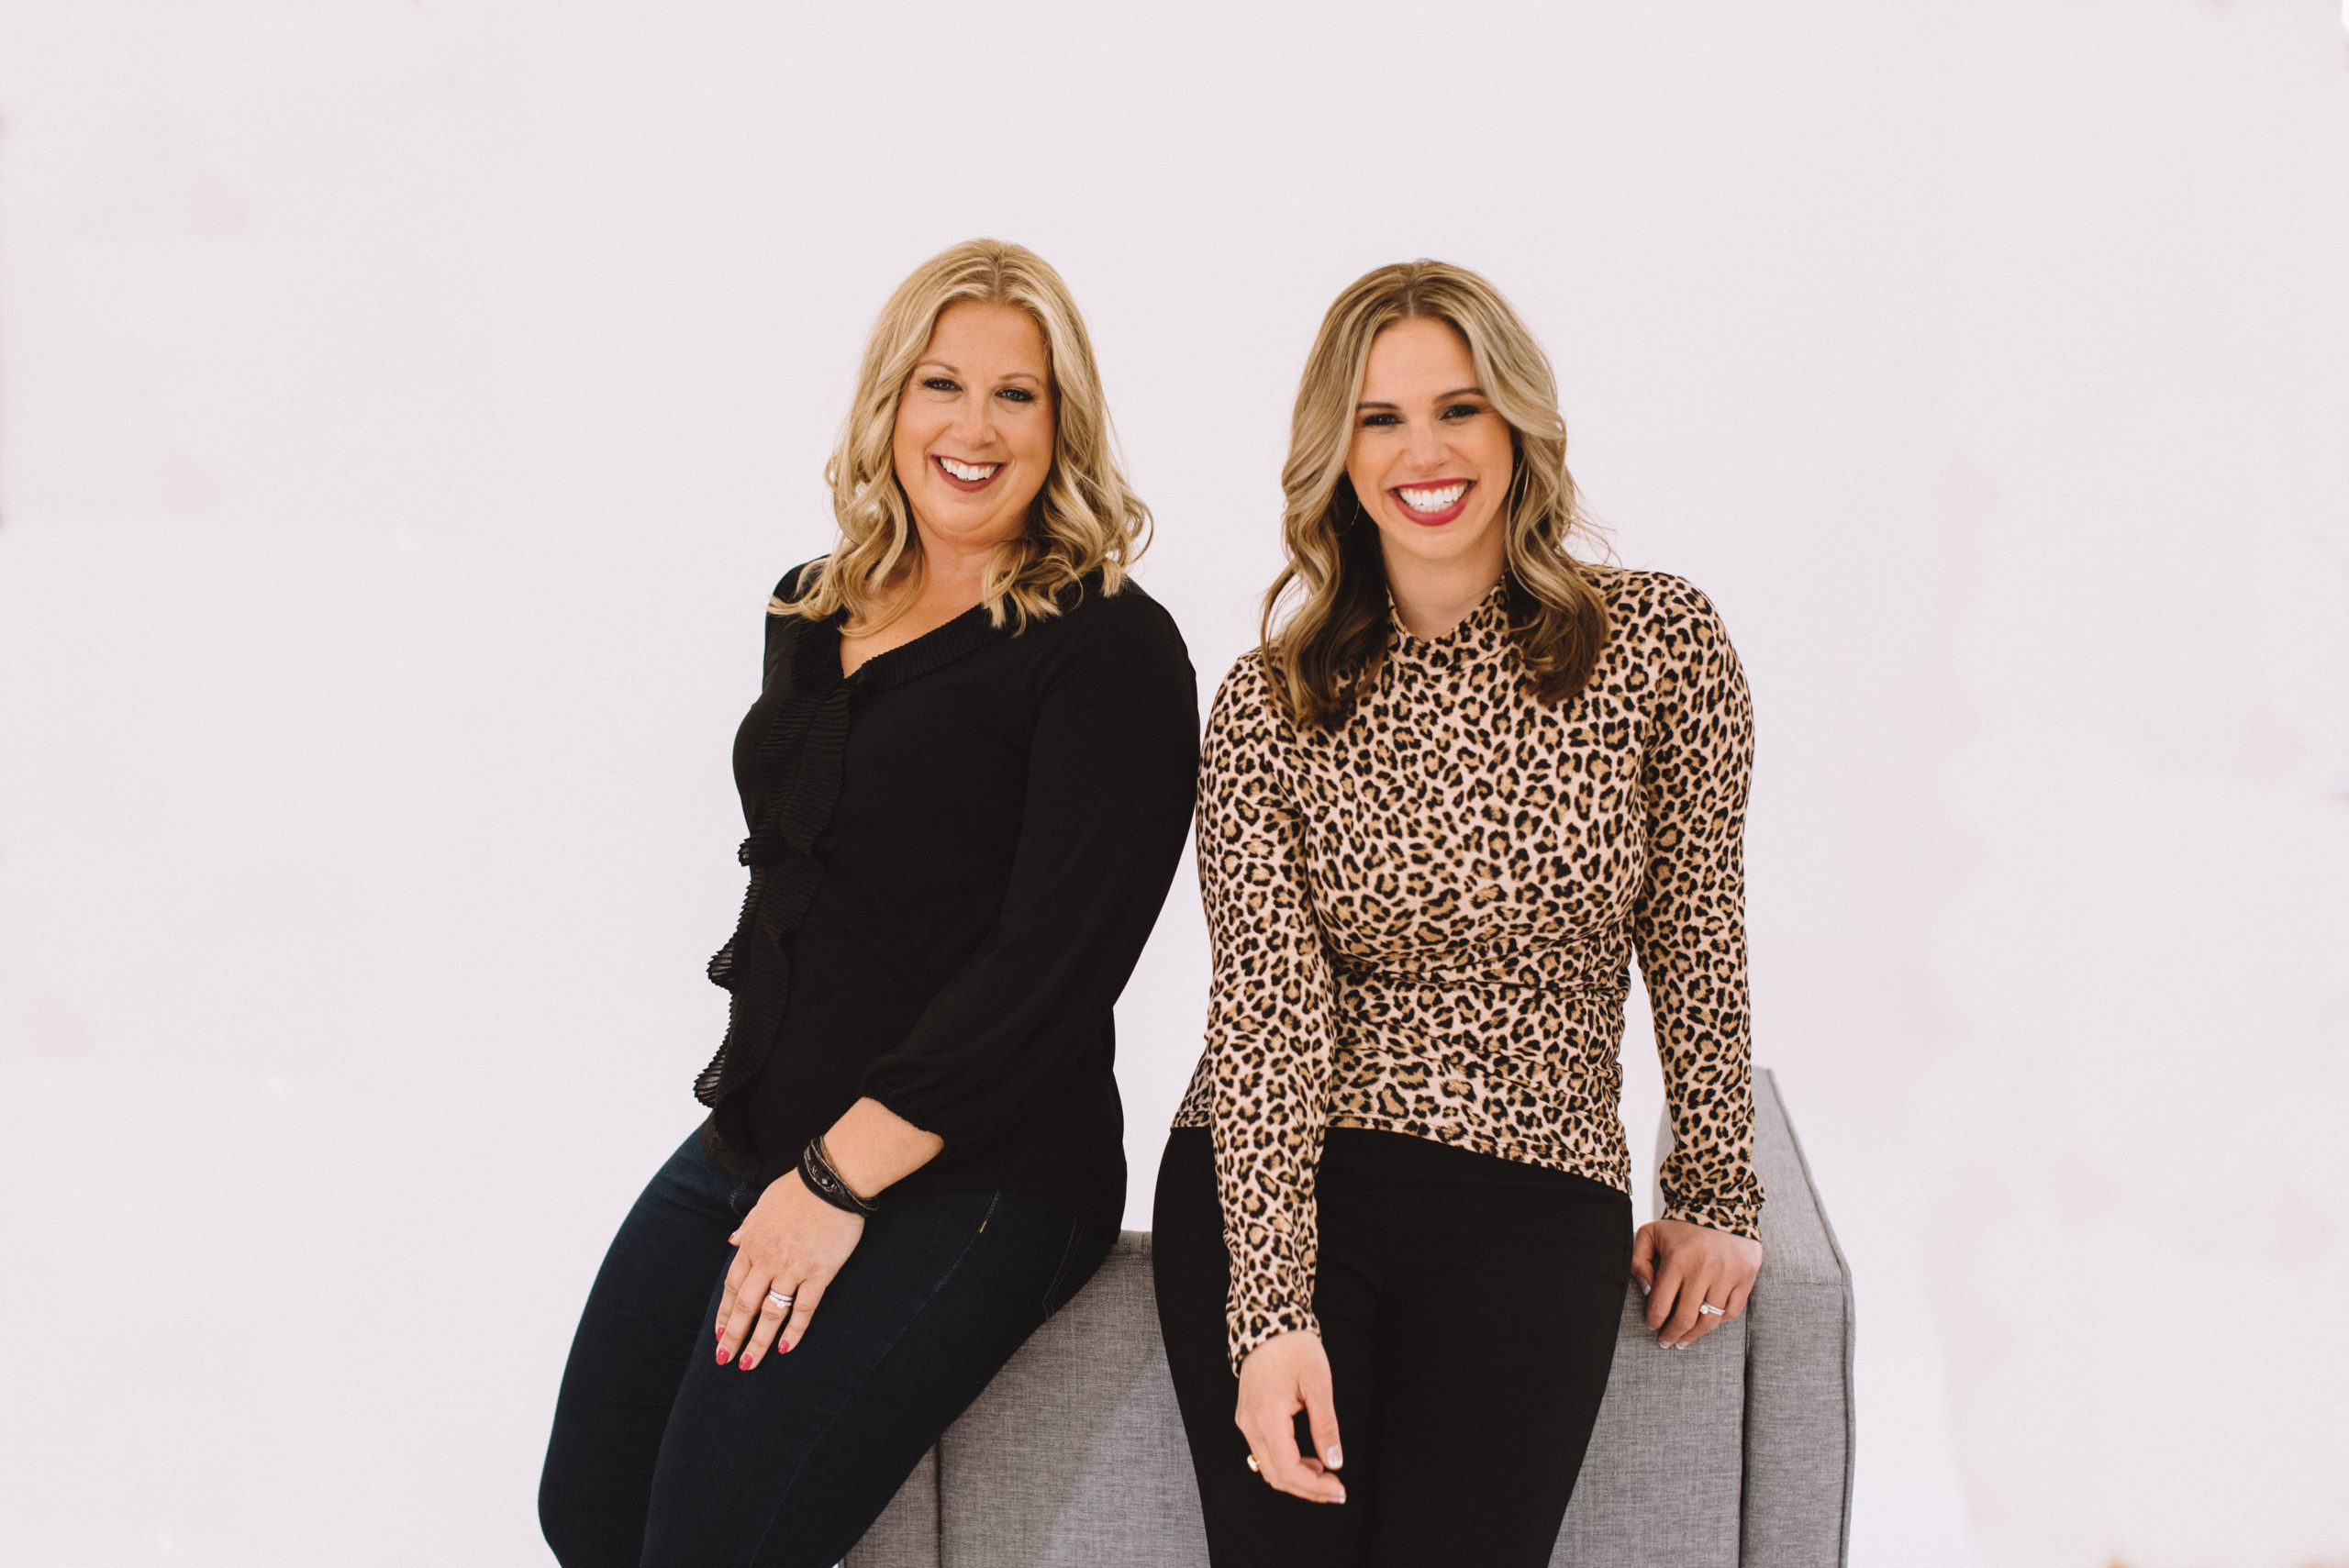 Ep286: Growth Through Connections with Women's Business League founders Melissa Gilbo and Amy Pocsik